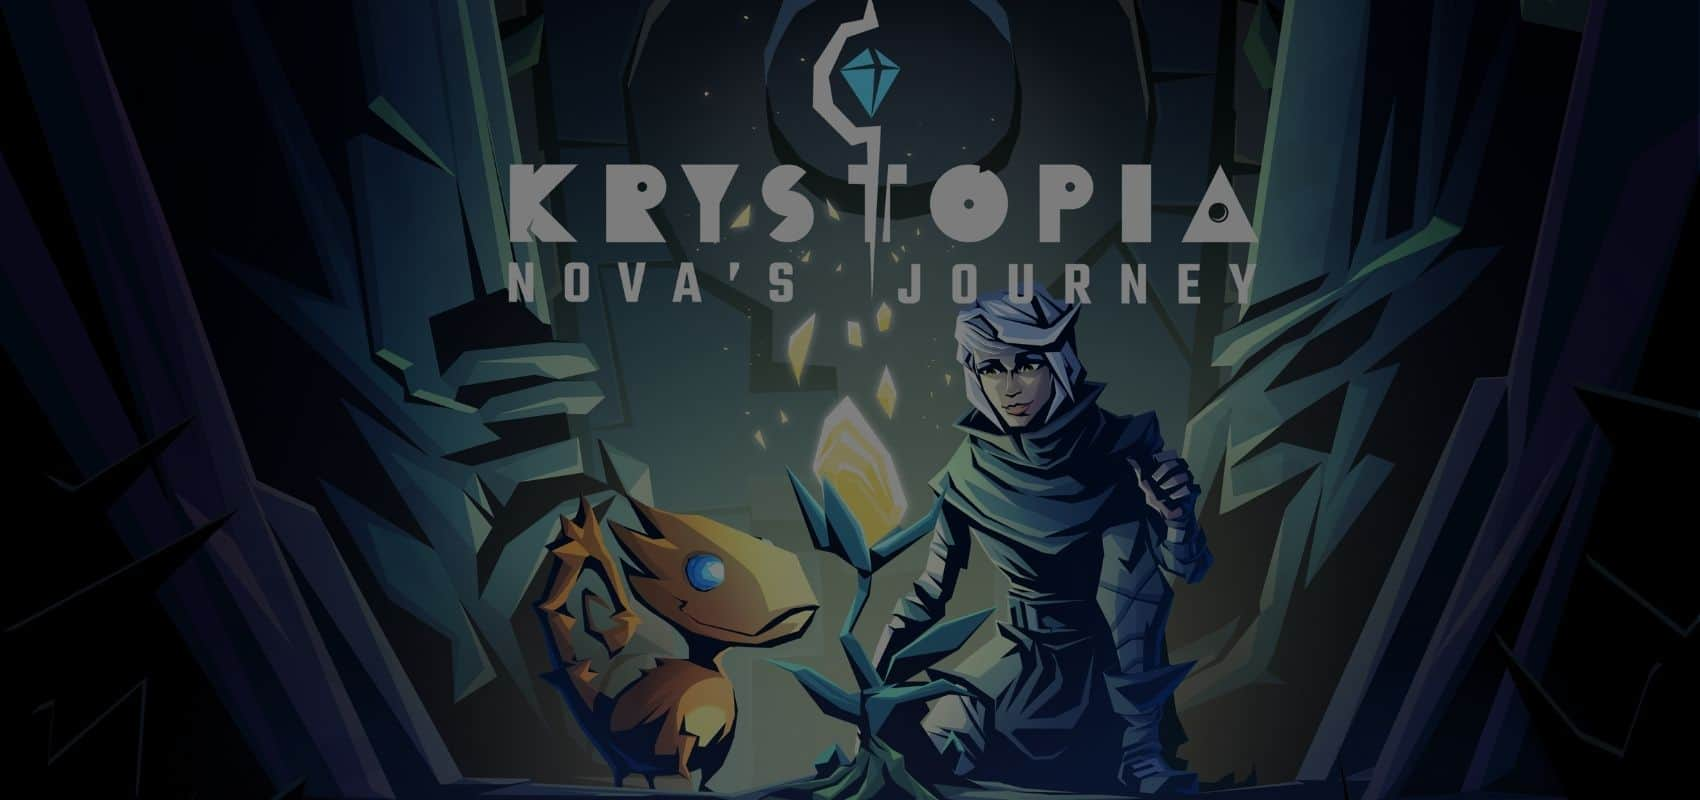 Return to Krystopia in Krystopia: Nova's Journey, out now on mobile and PC